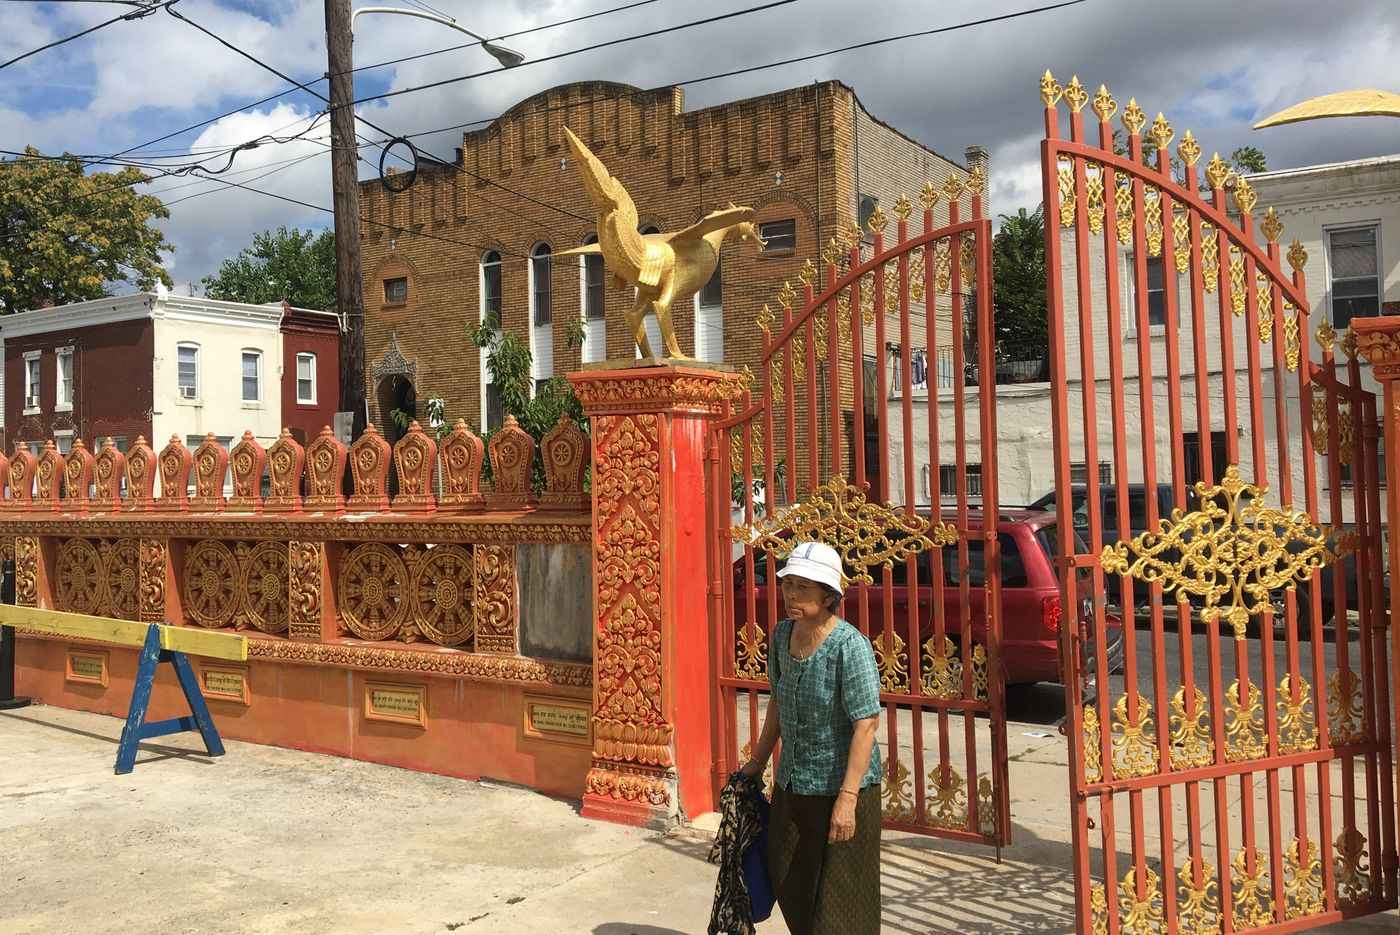 A Buddhist temple embedded in a synagogue tells the story of South Philly immigration